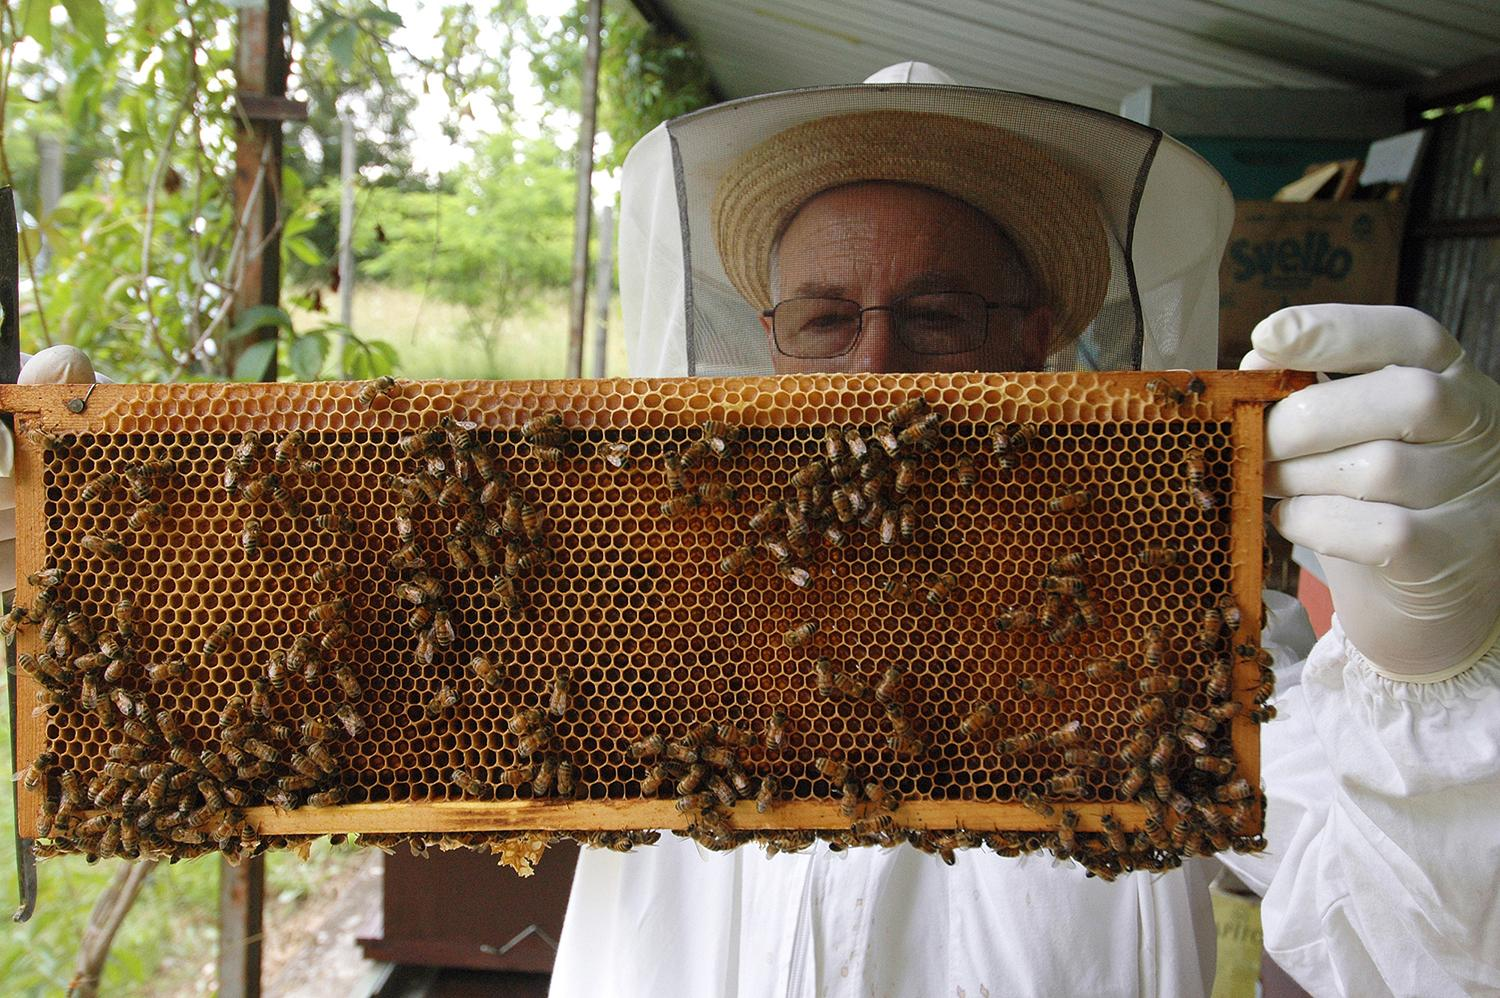 A beekeeper from Apicoltura Avianese Honey Farm in Italy checks for the queen bee on a honeycomb frame. (U.S. Air Force photo / Senior Airman Justin Weaver)